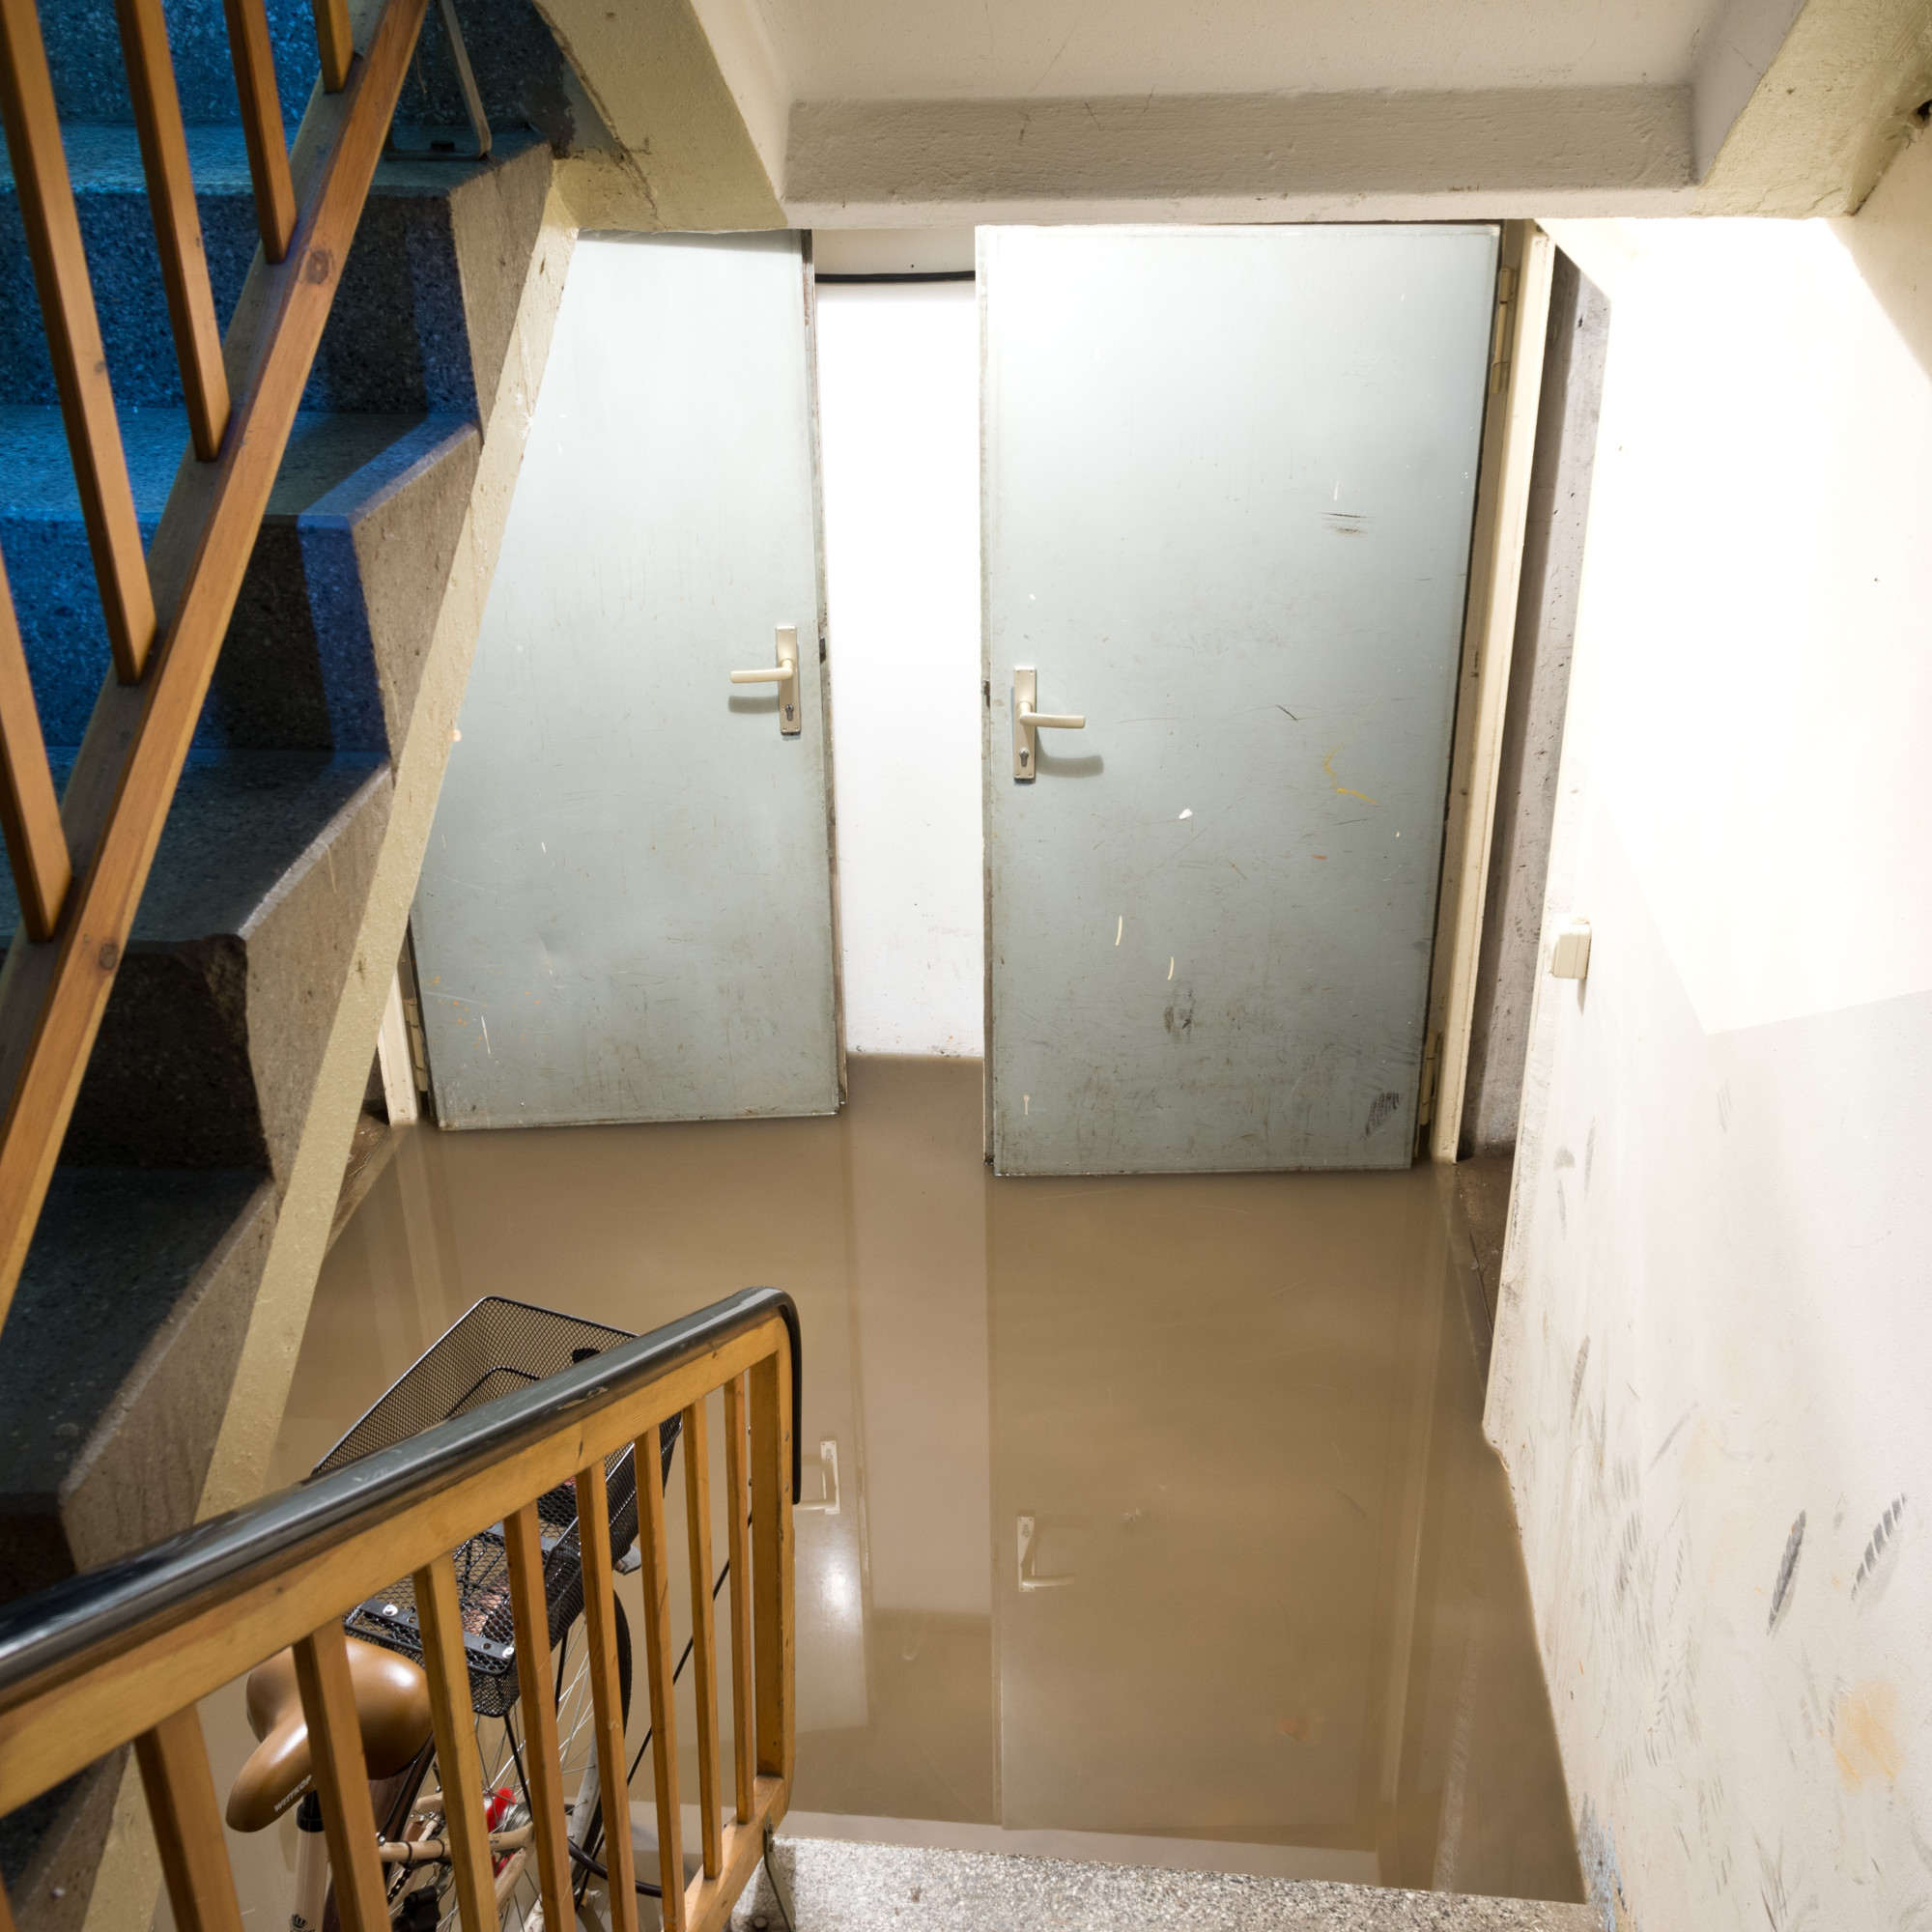 Water Damage Mentor Offers Expert Advice and Valuable Information On The Hazards of Water Damage